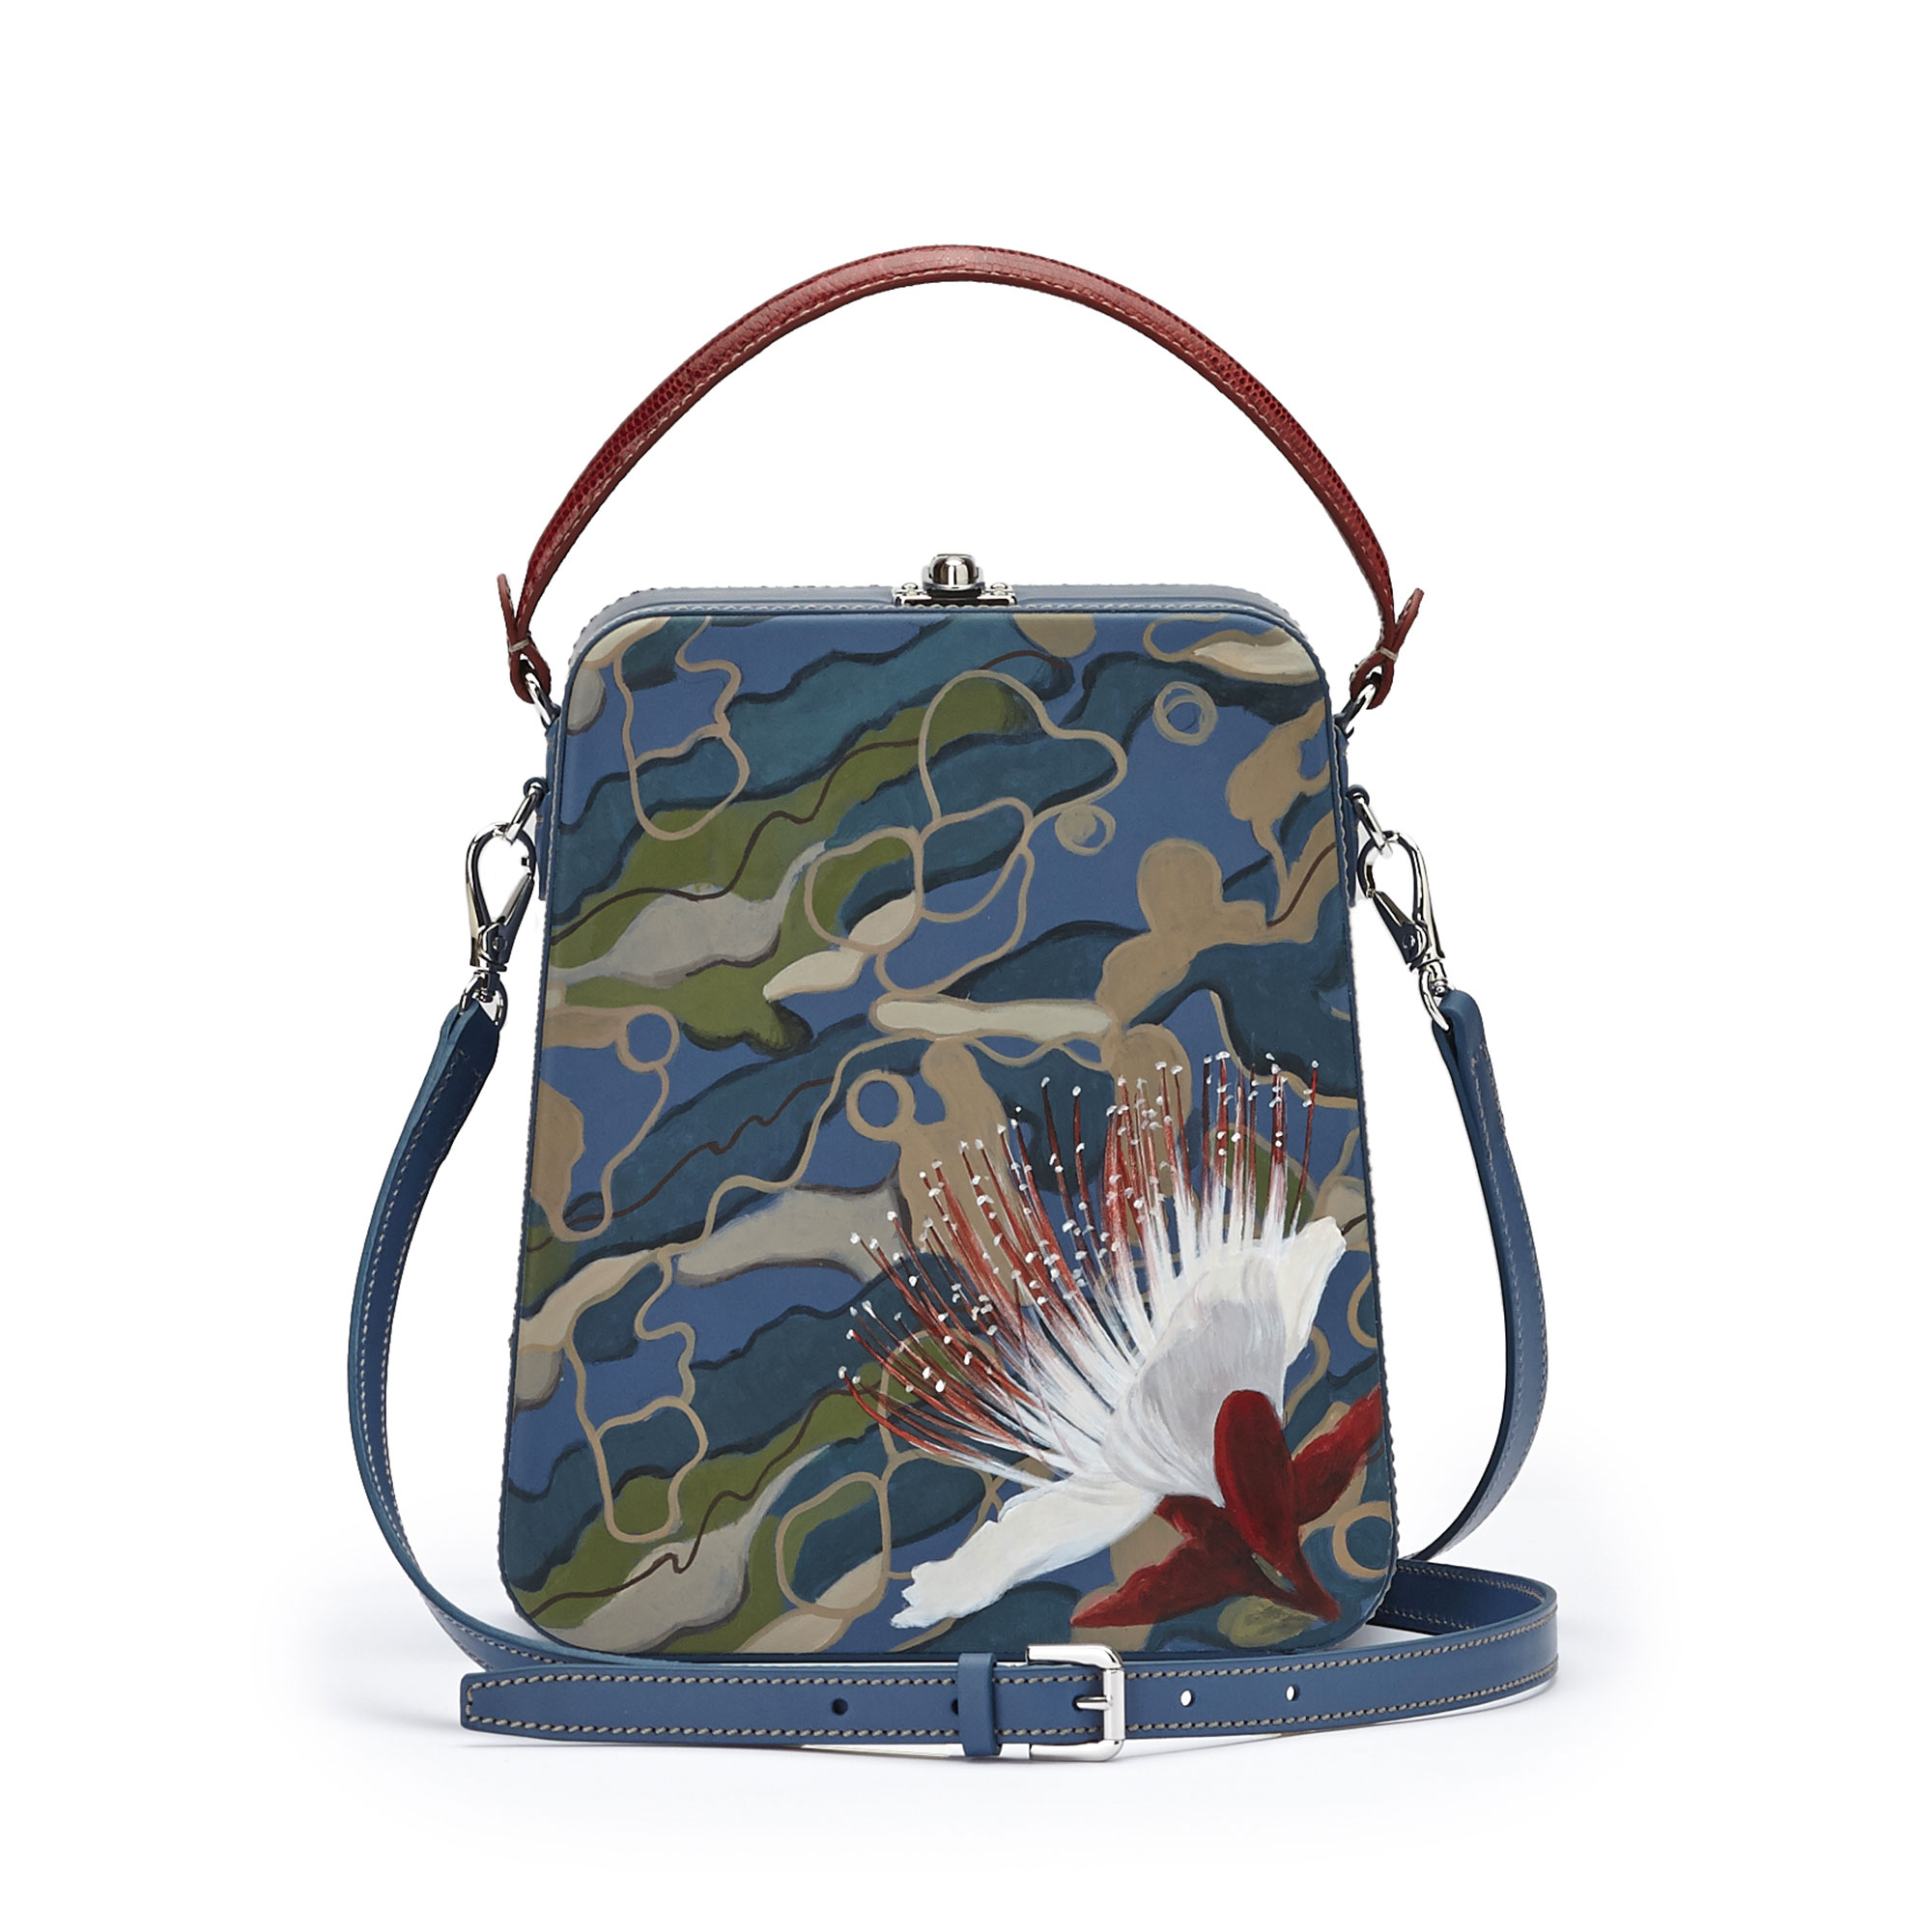 The camouflage effect with hand painted flower french calf Tall Bertoncina bag by Bertoni 1949 03